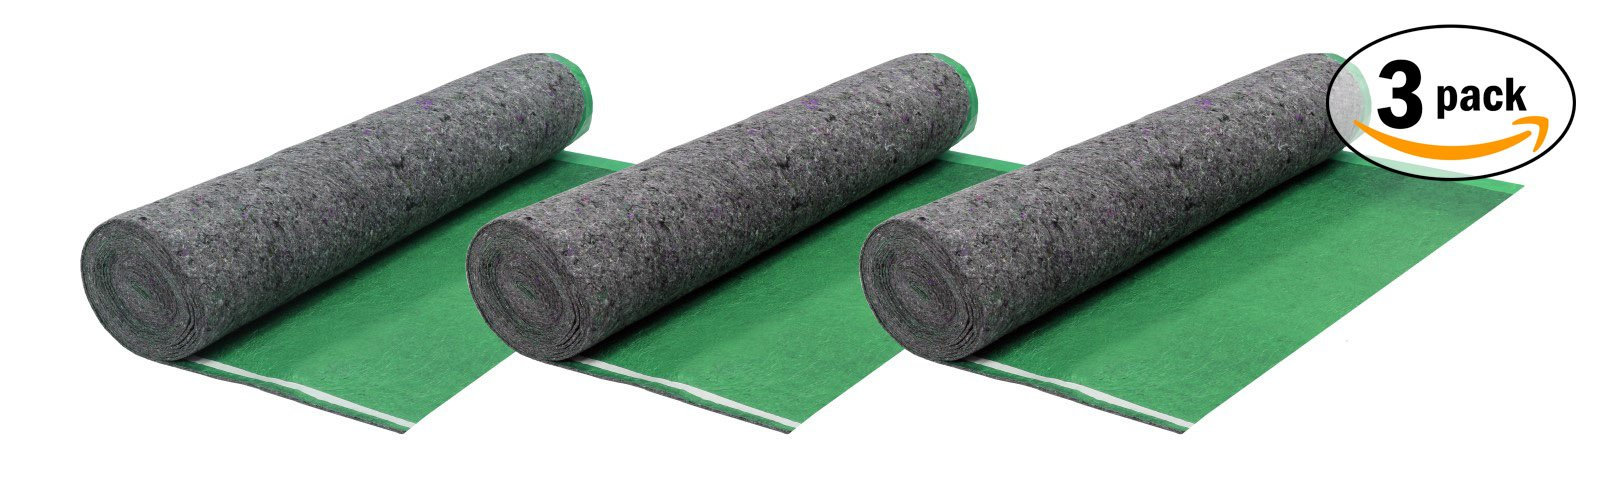 AMERIQUE Super Quiet Walk FELT Underlayment Heavy Duty Padding with Vapor Barrier & Tape, Perfect for Hardwood, Bamboo, Floating Floors & Laminate, BRIGHT GREEN, Pack Of 3